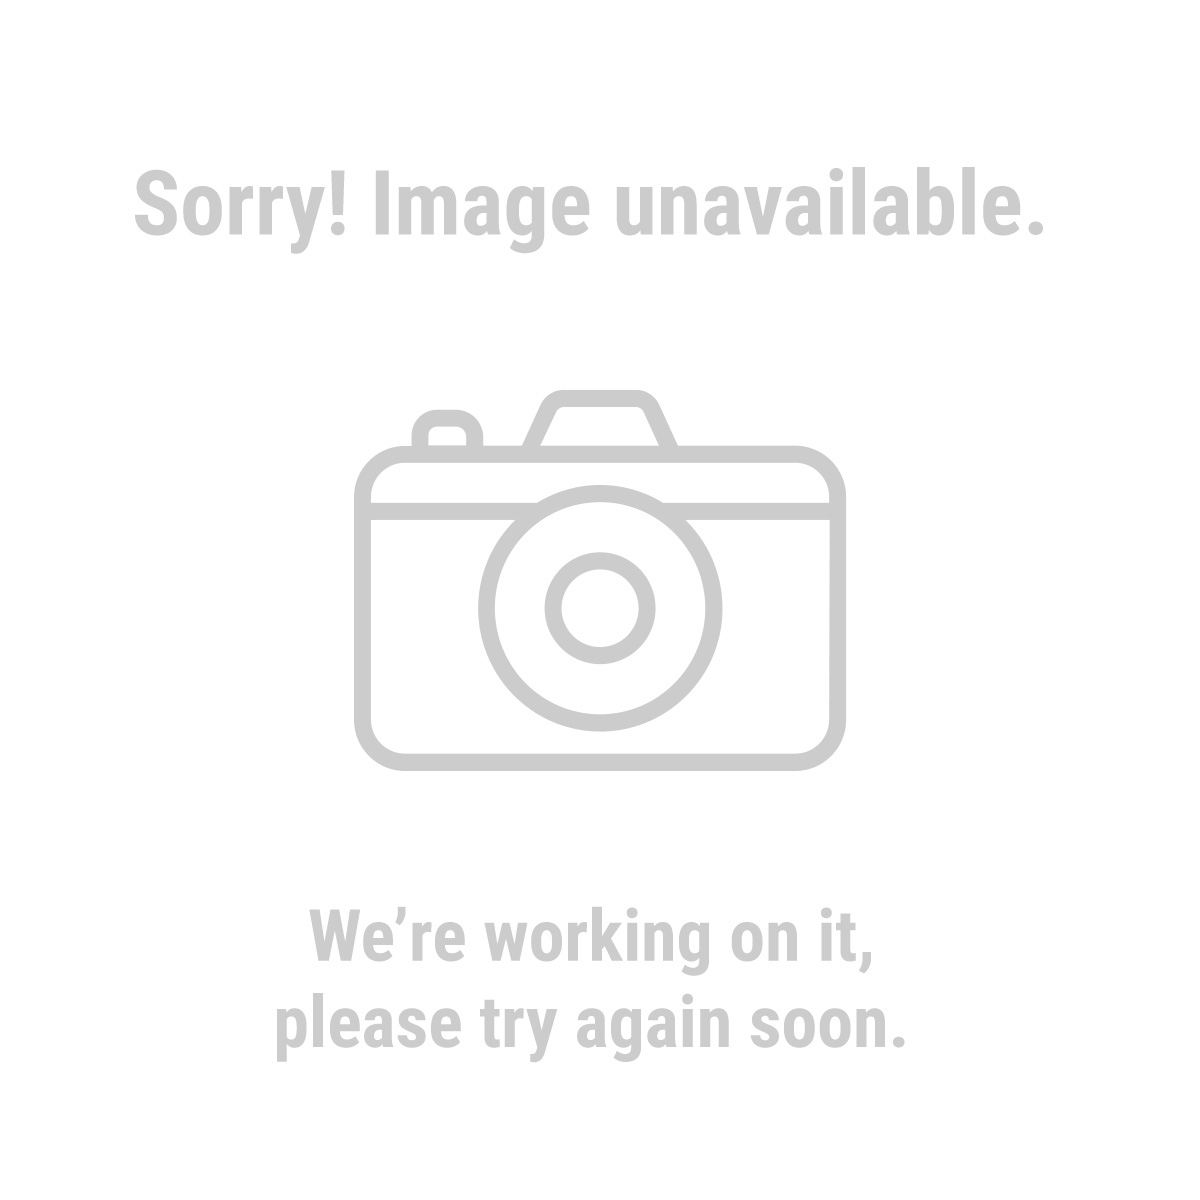 Western Safety 42100 Hard Cap Knee Pads